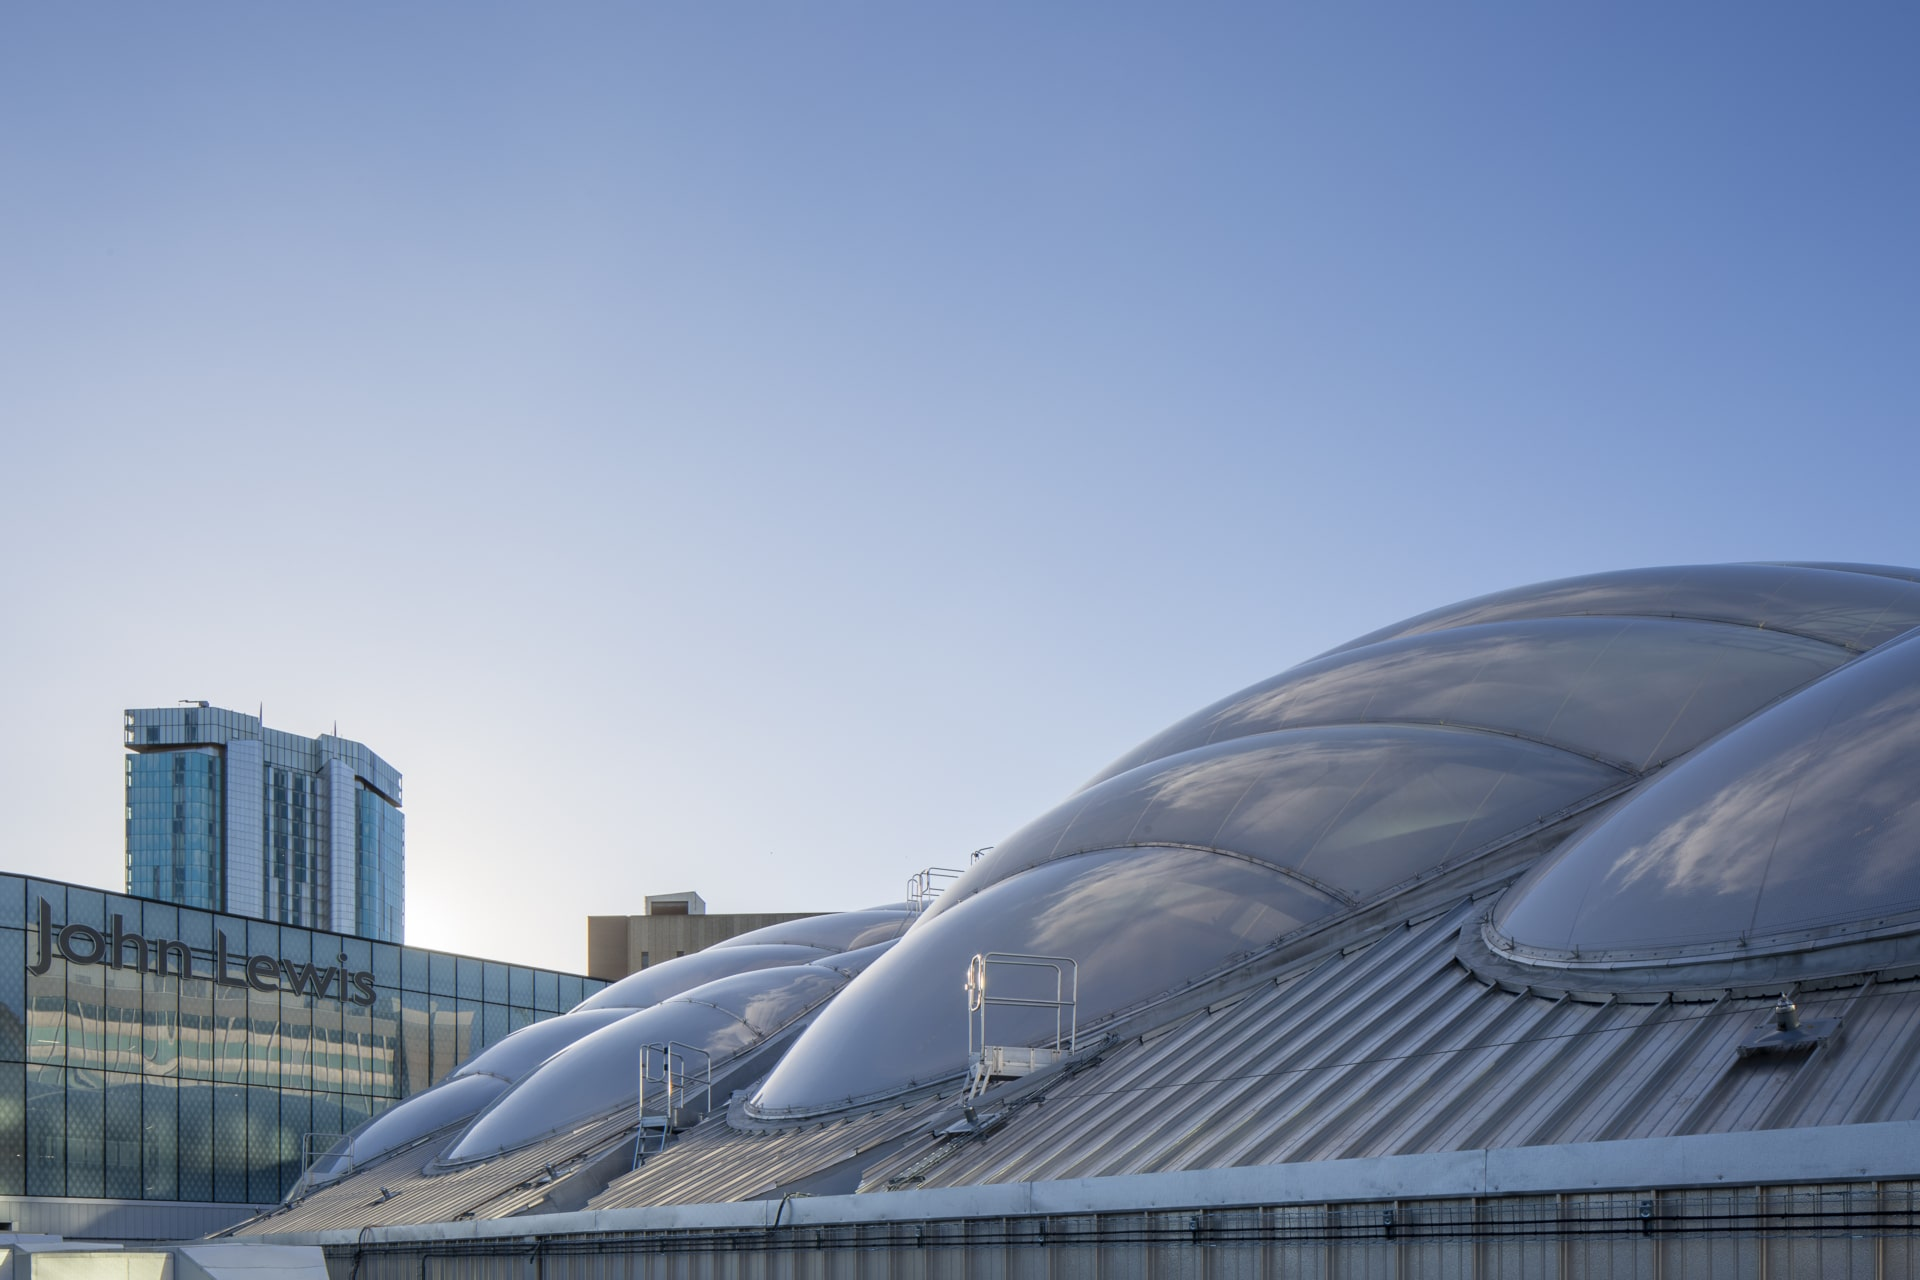 View from outside onto the ETFE atrium.